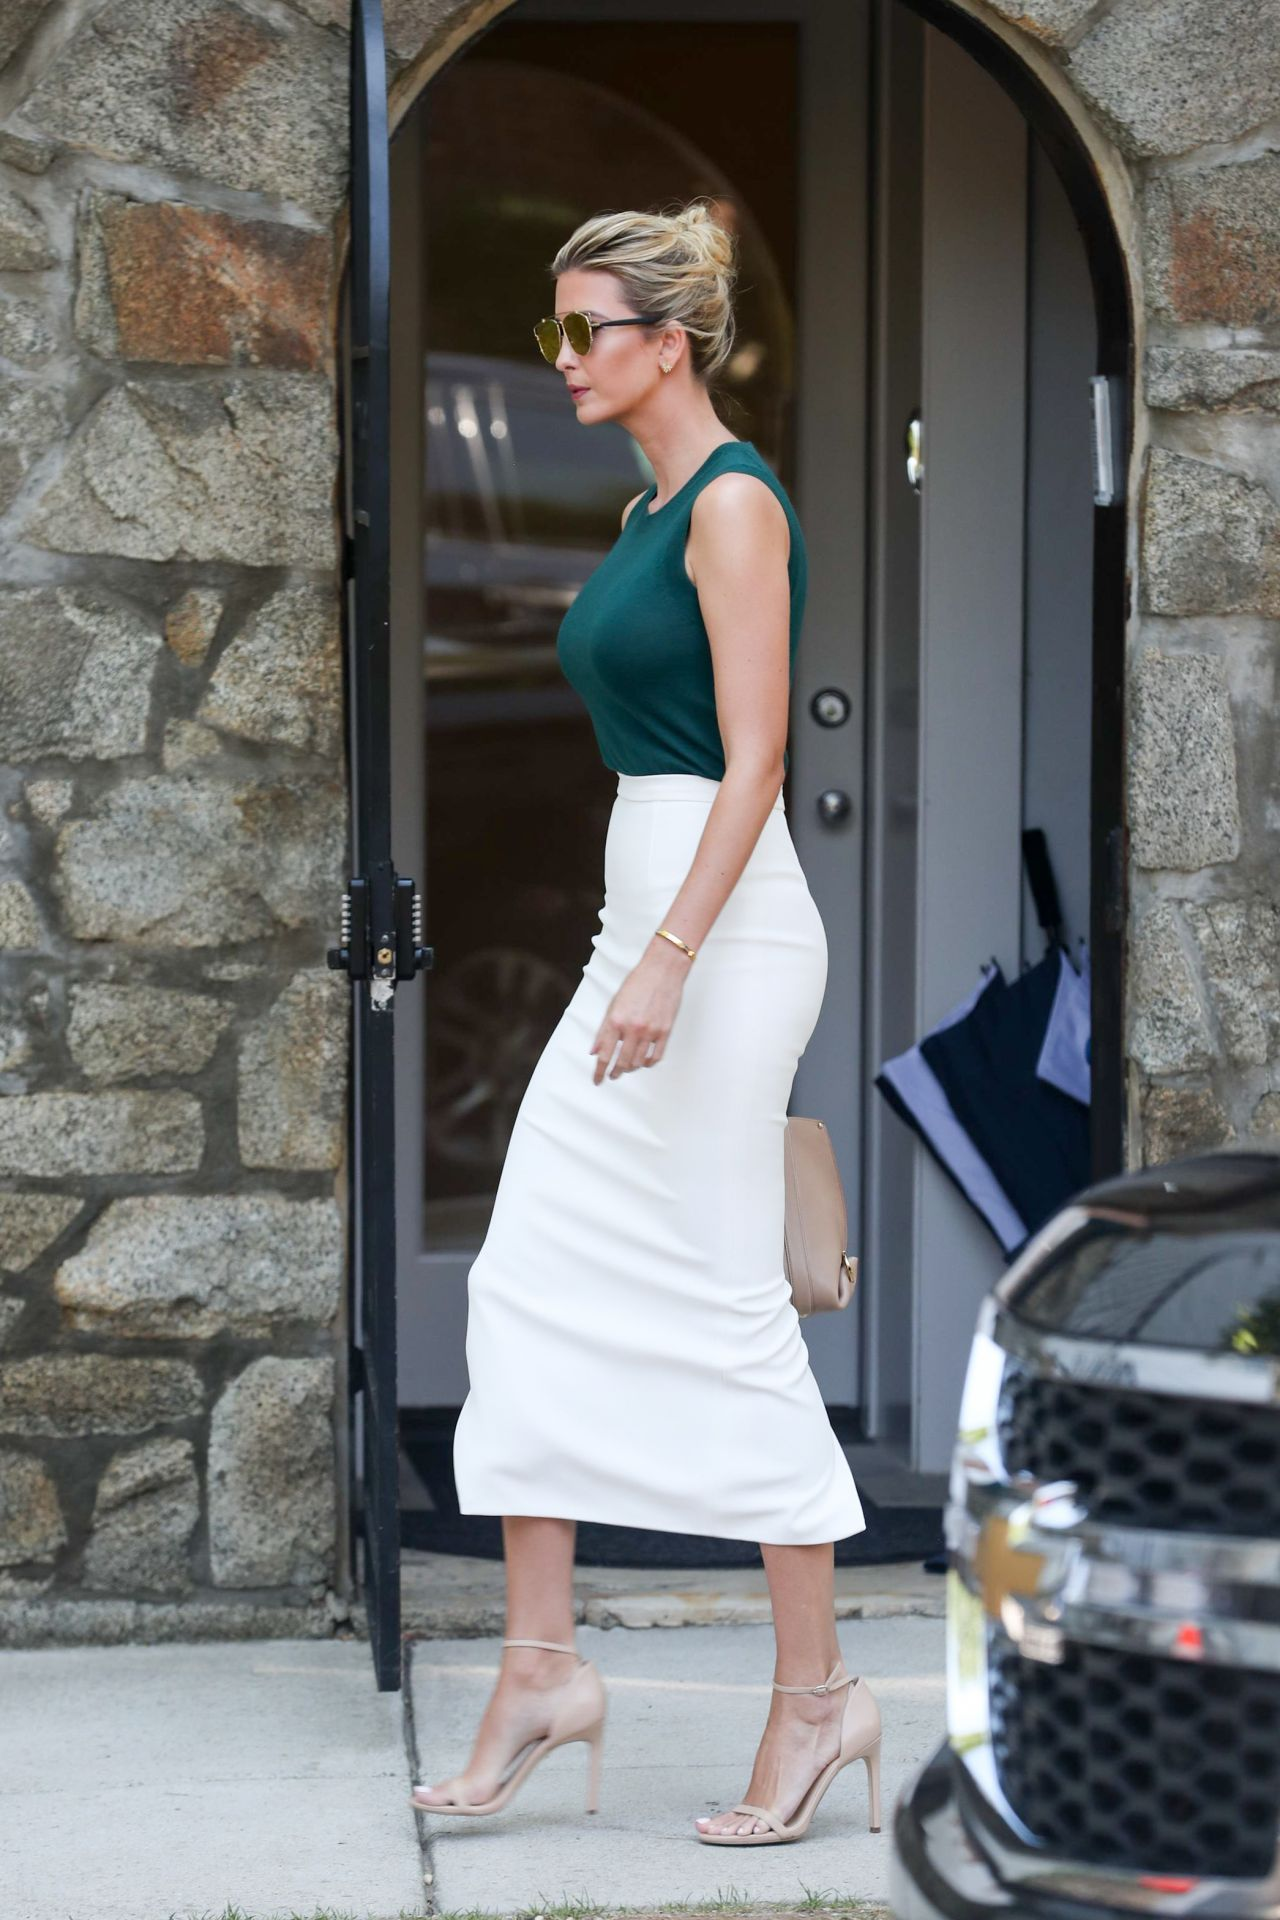 Ivanka Trump Heads To Work In Washington D C 08 01 2017